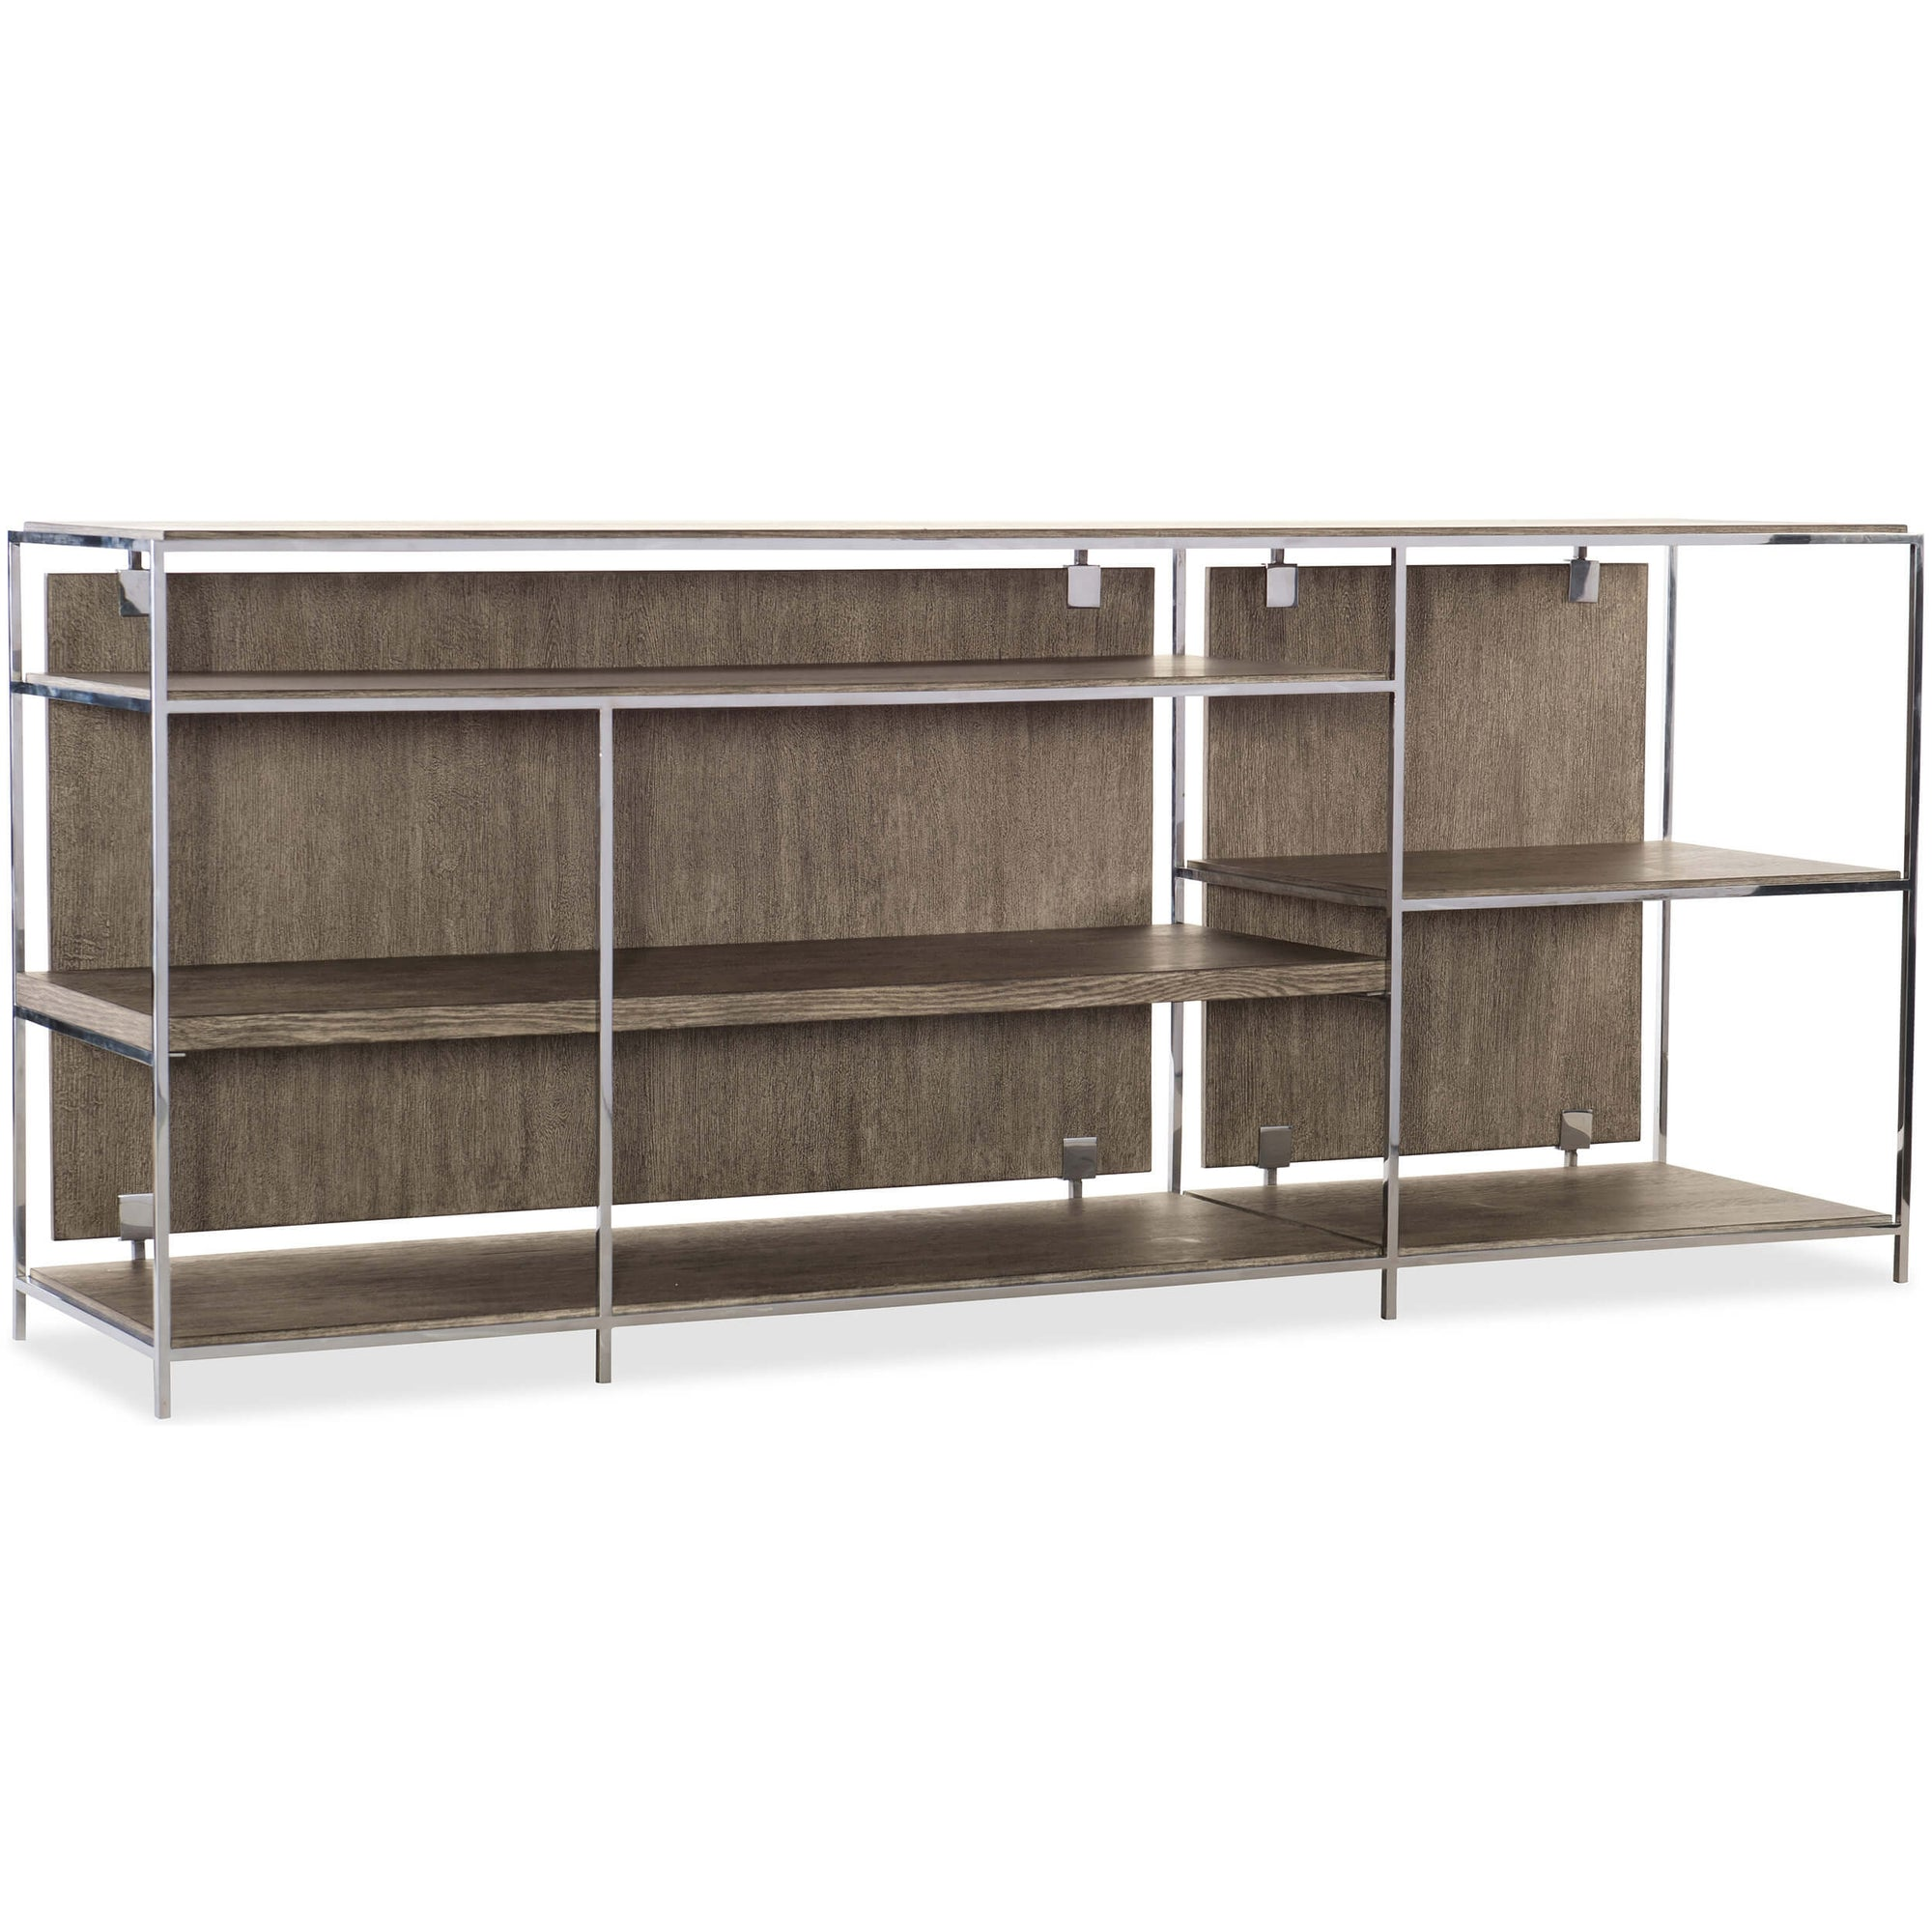 Storia Low Bookcase High Fashion Home